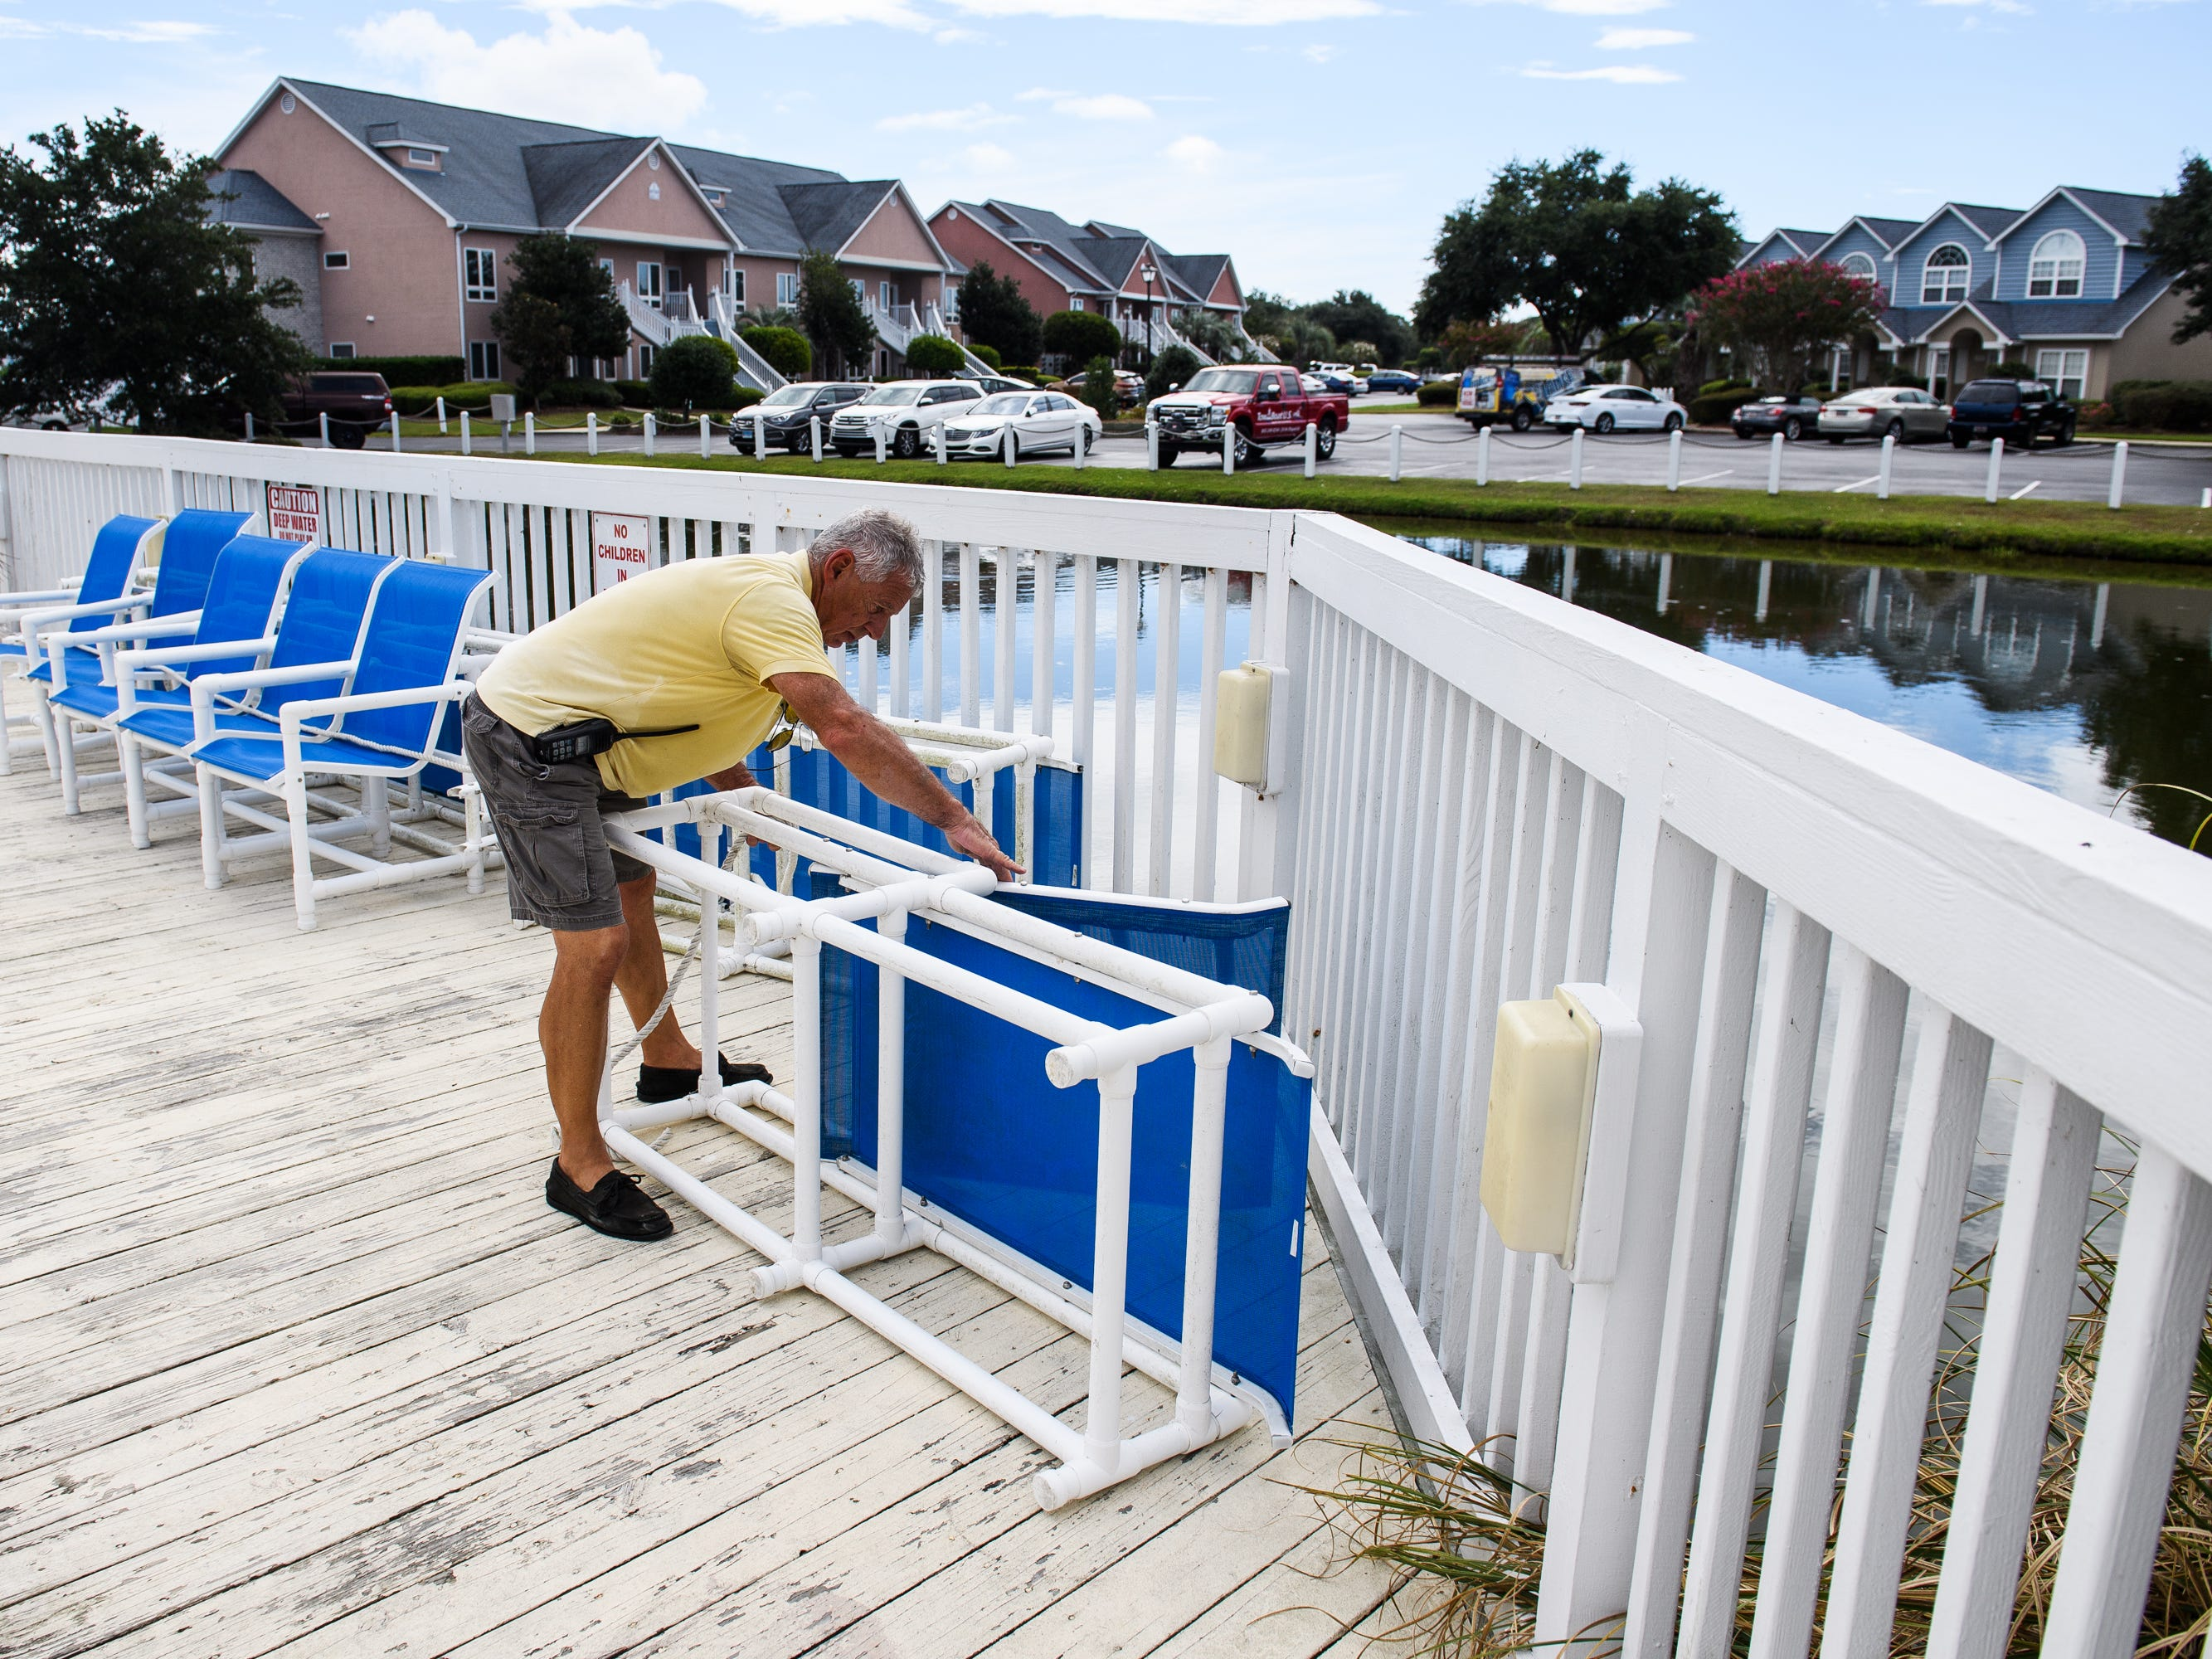 George Rubis, assistant dock manager at the Lightkeepers Marina, ties up sunbathing chairs at the clubhouse on Wednesday, Sept. 12, 2018.